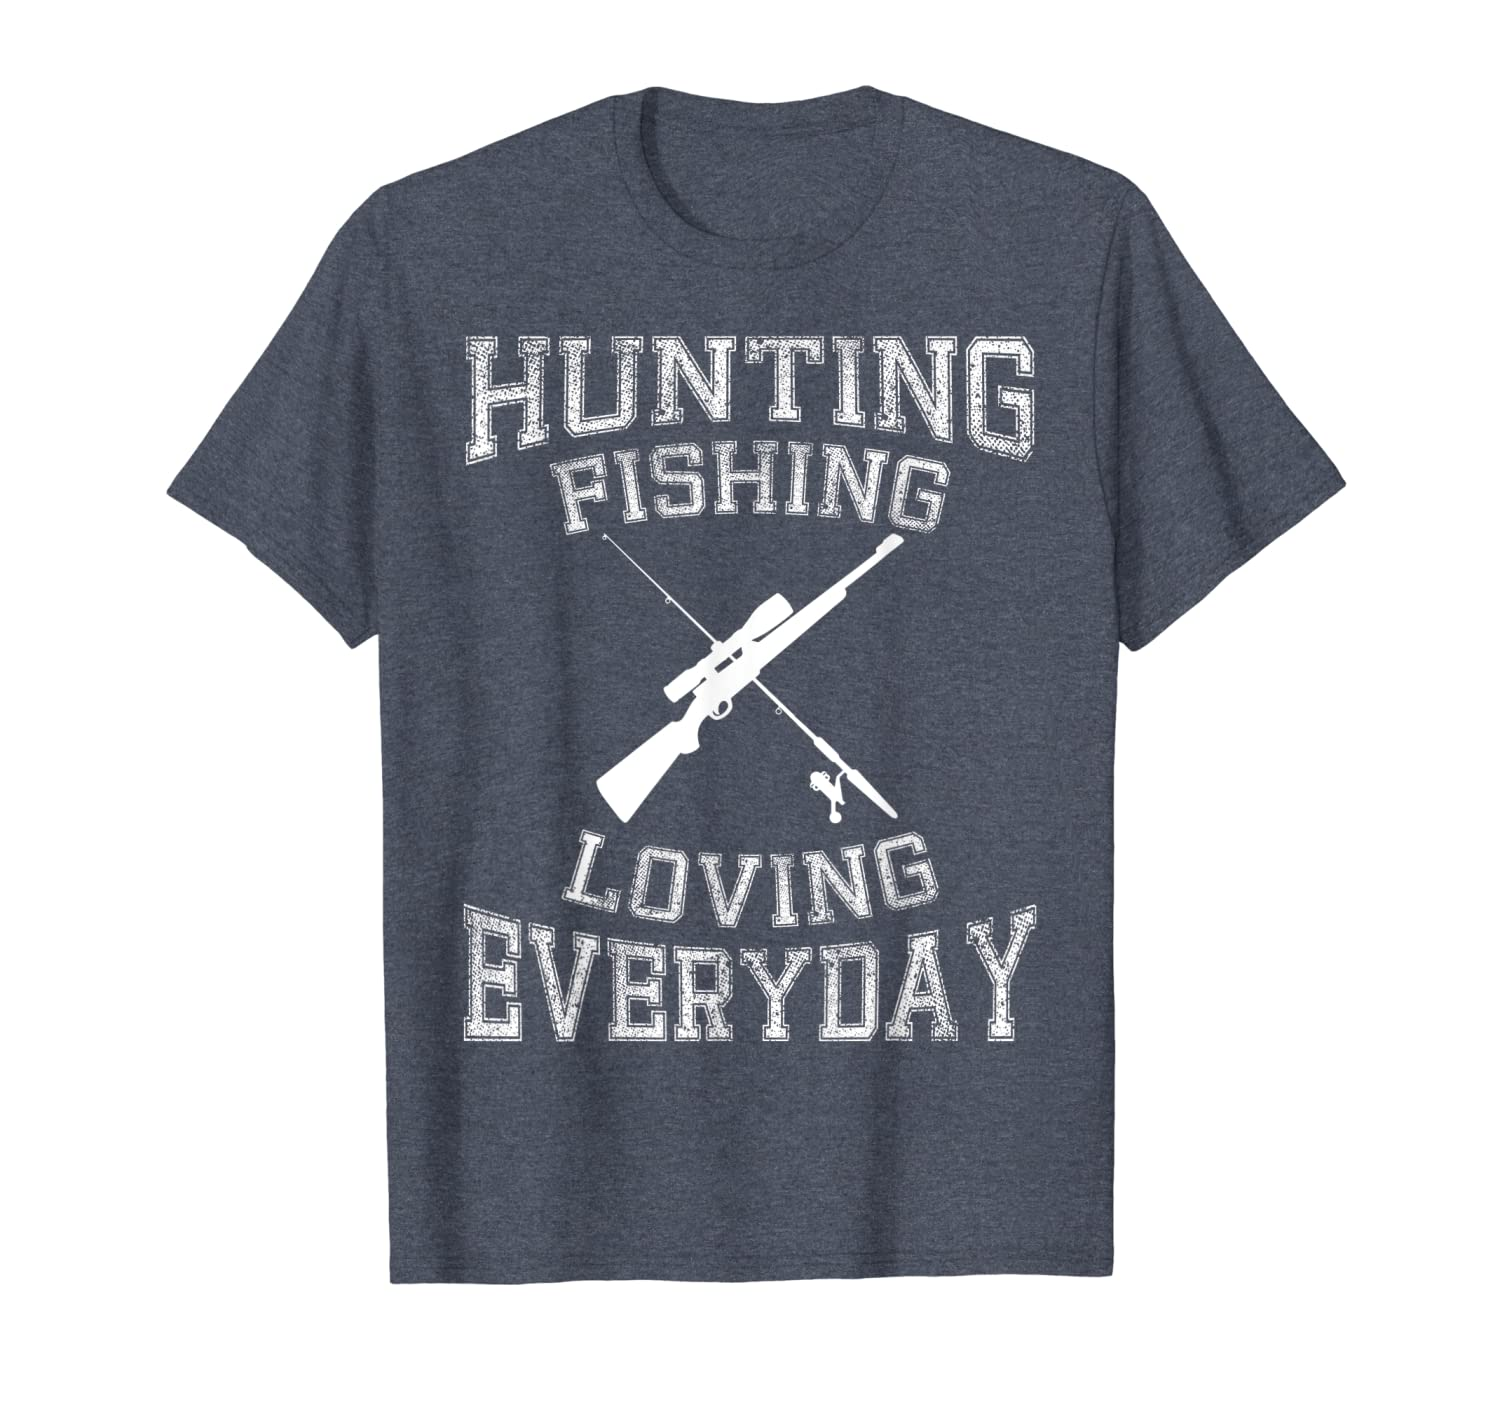 Hunting Fishing Loving Everyday T-Shirt Hunters & Fishermen Unisex Tshirt